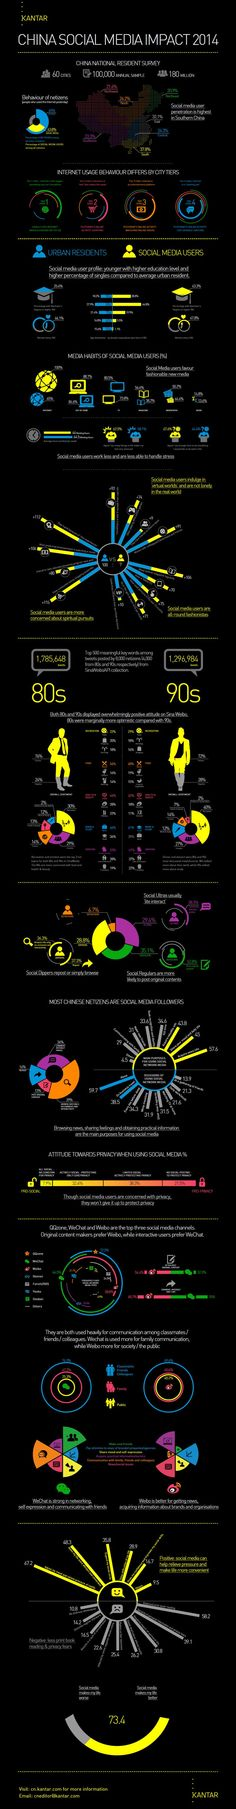 kantar_china_social_media_impact_report_2014_en